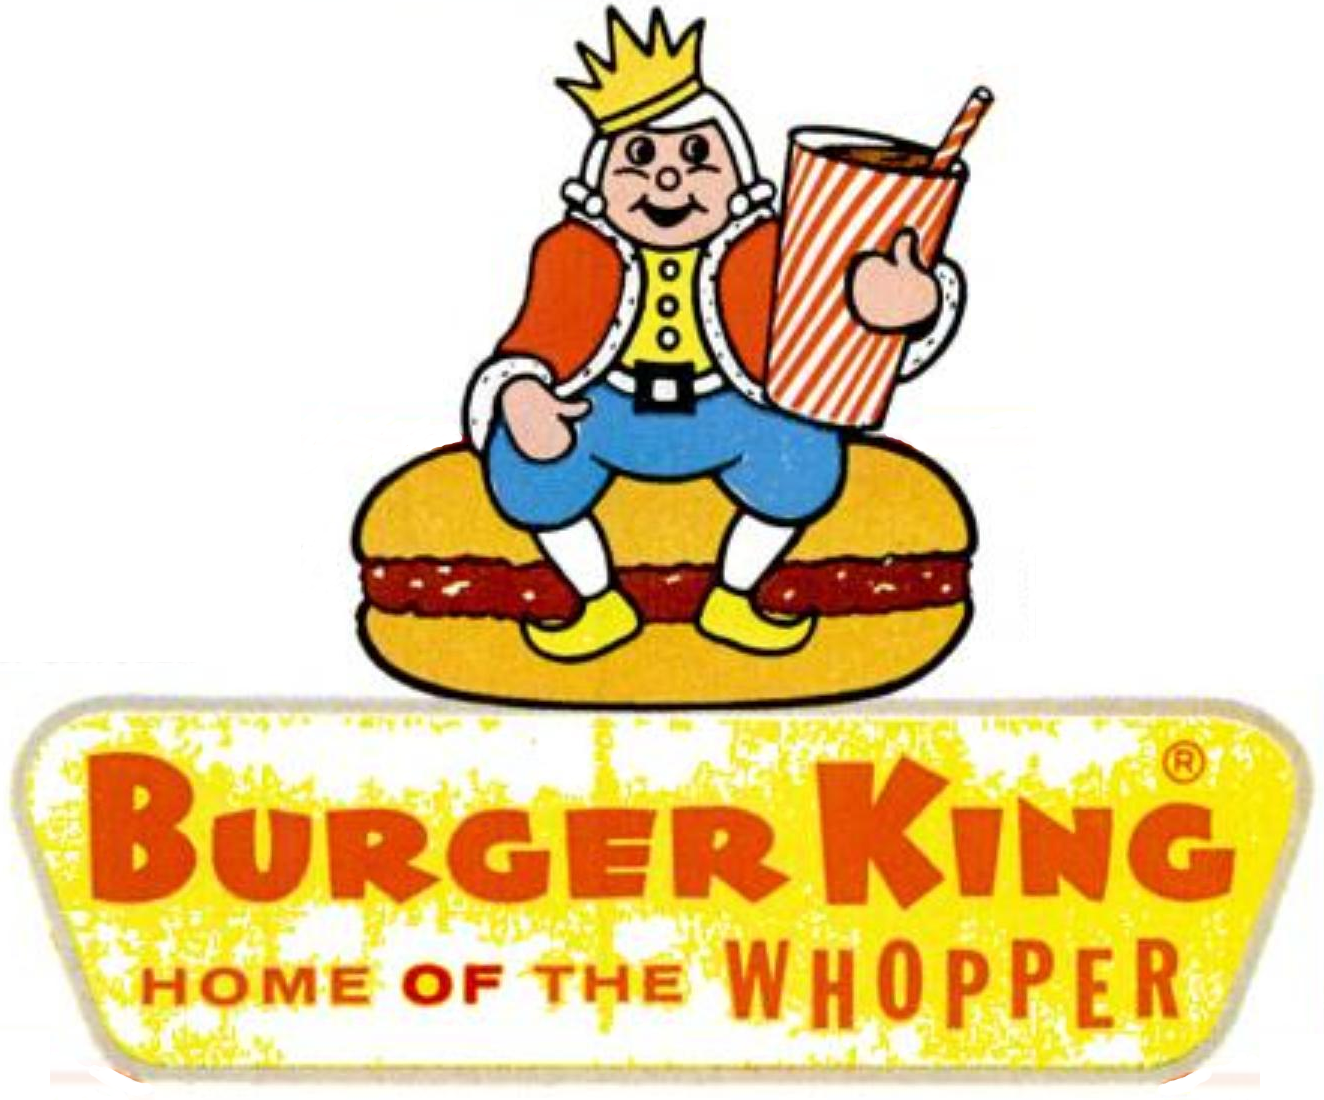 Burger clipart burger king FANDOM Logopedia King Burger Burger